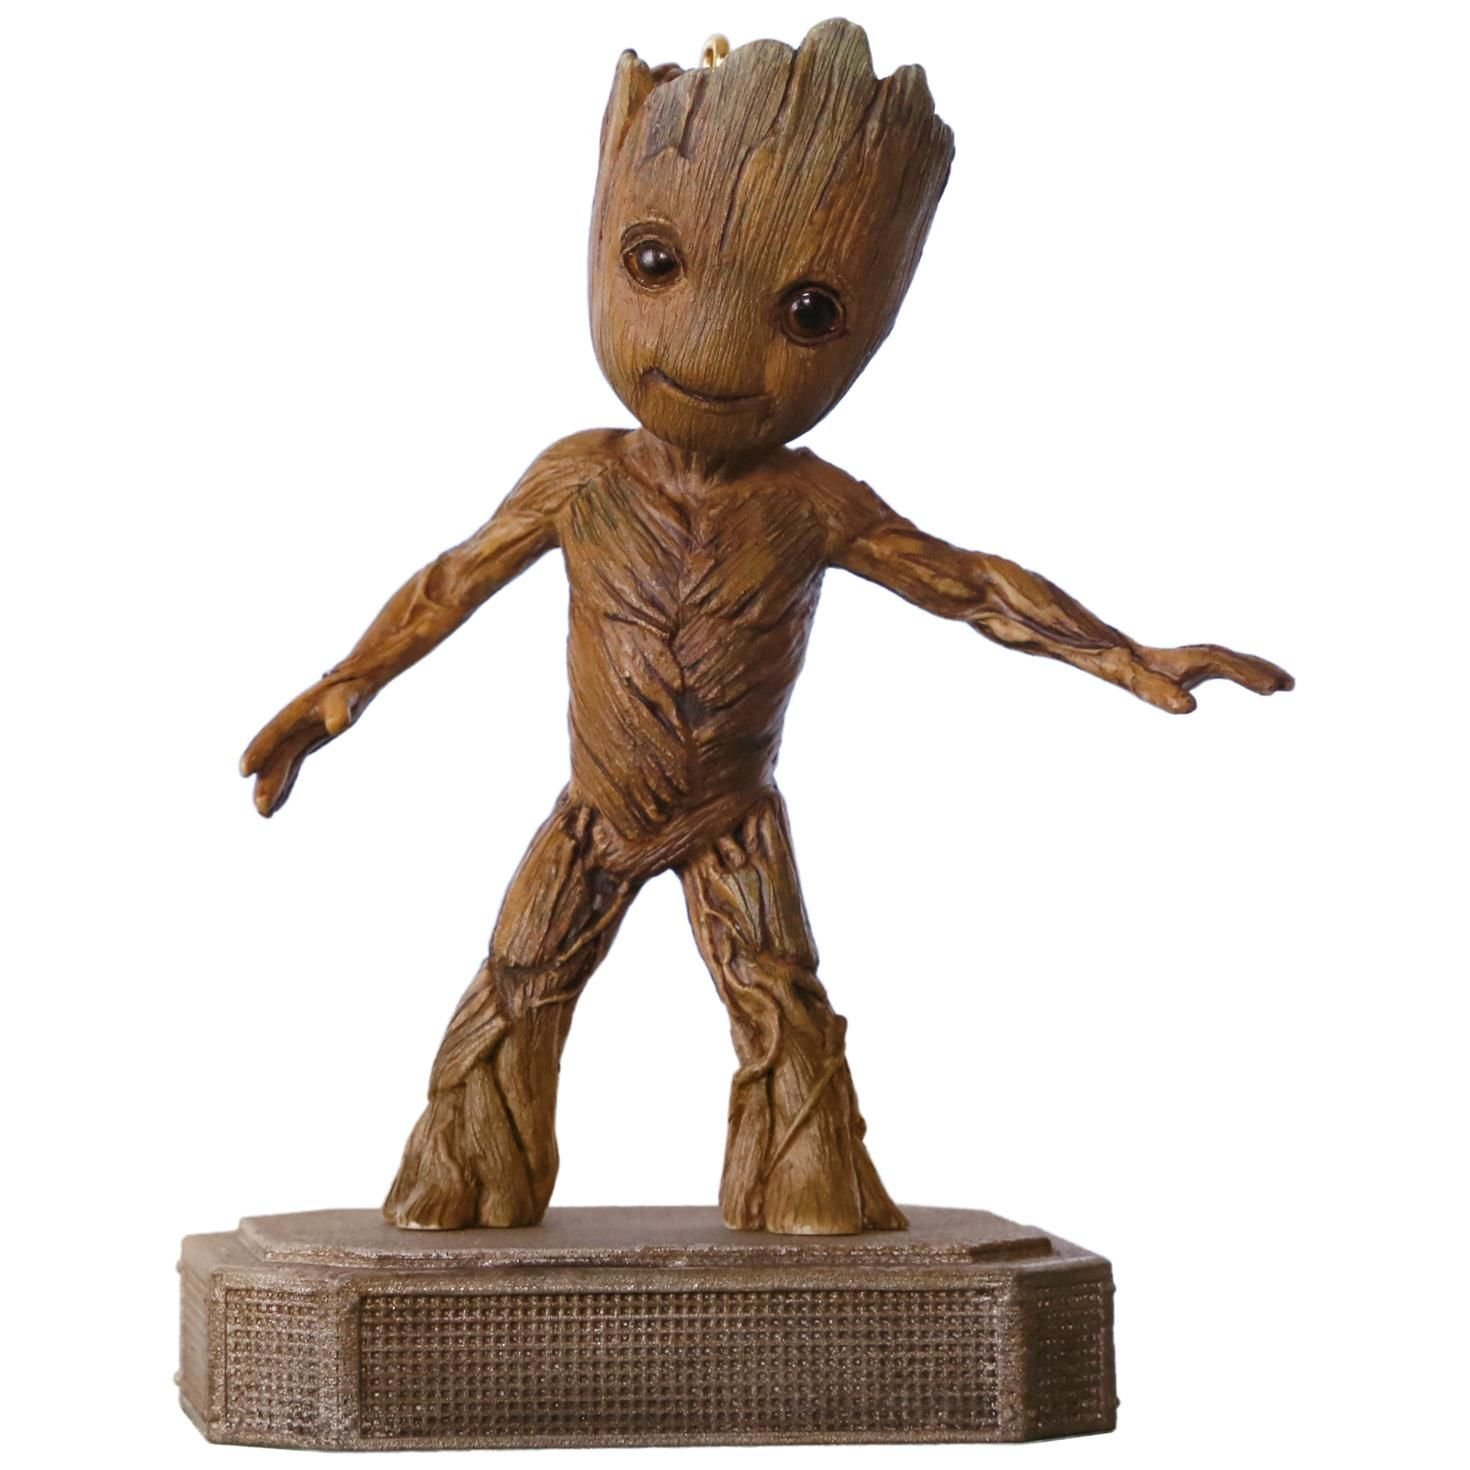 Hallmark 1795QXI3465 Marvel Guardians of the Galaxy Groot Keepsake Christmas Ornaments